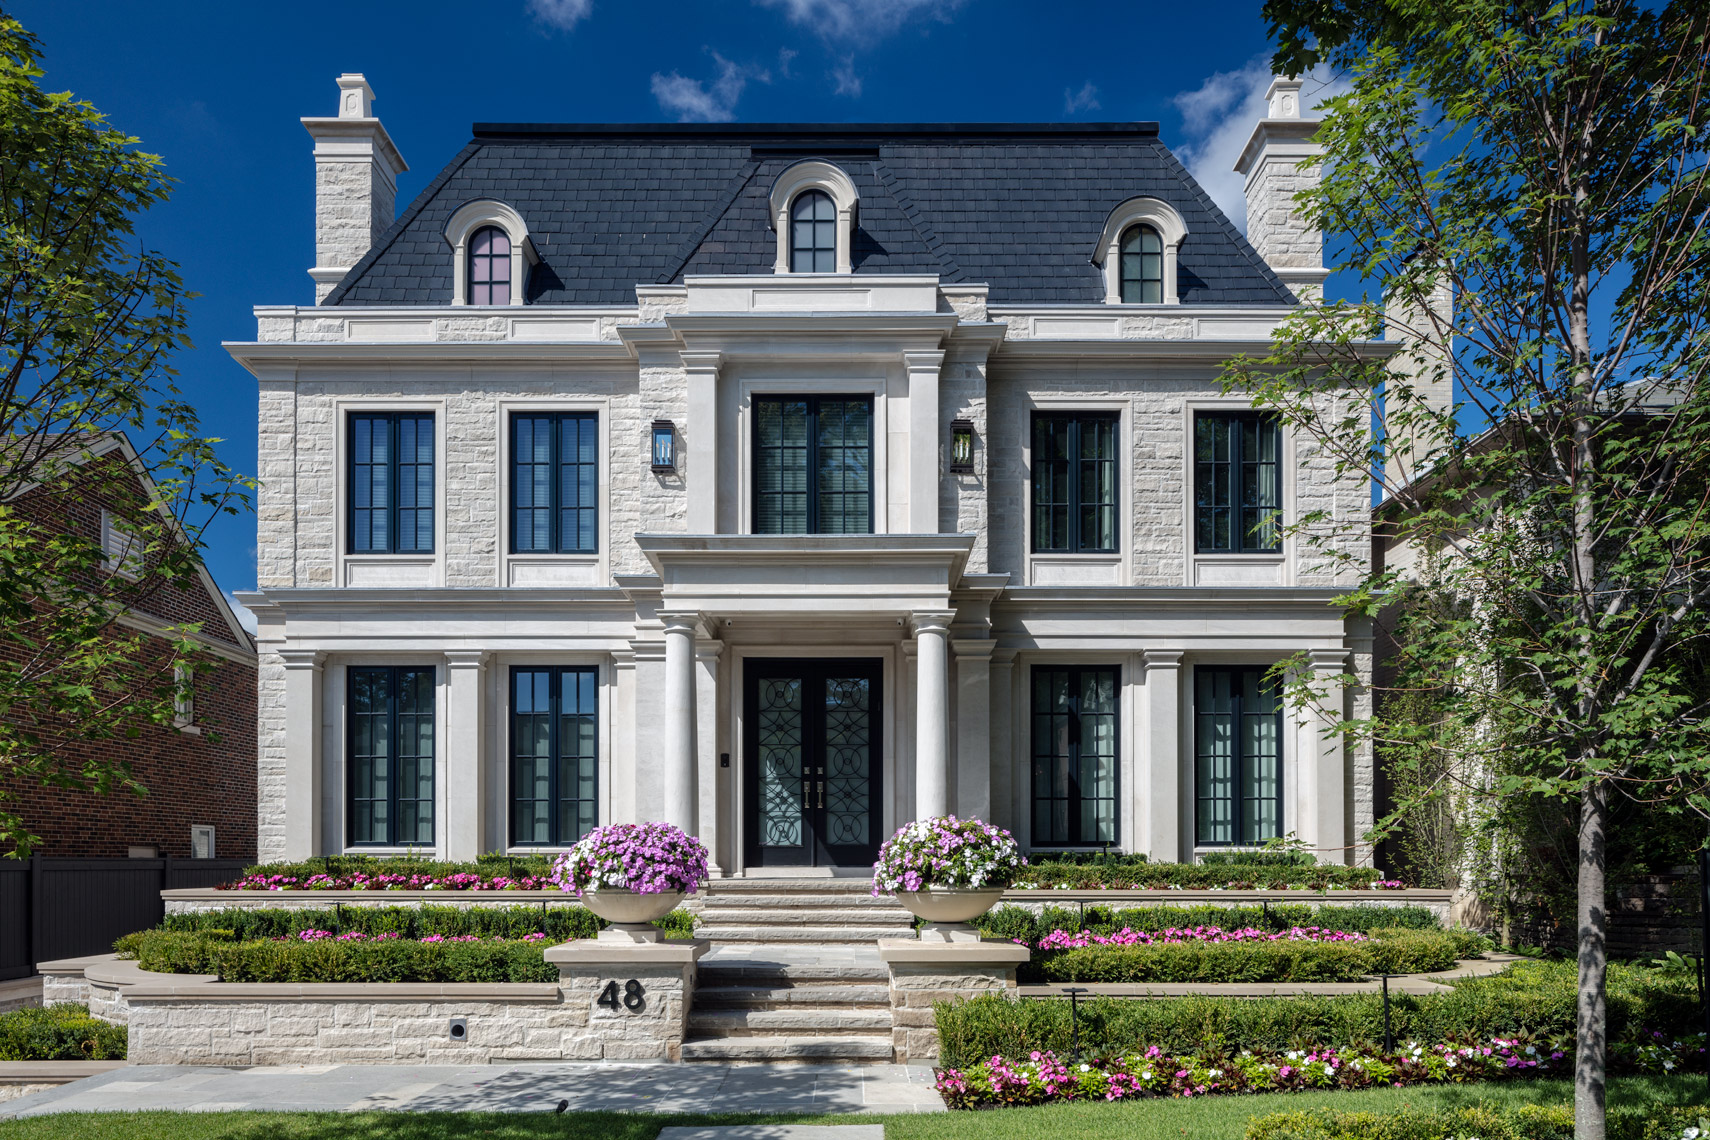 Customhomes-FrenchTransitional-luxuryhomes-1